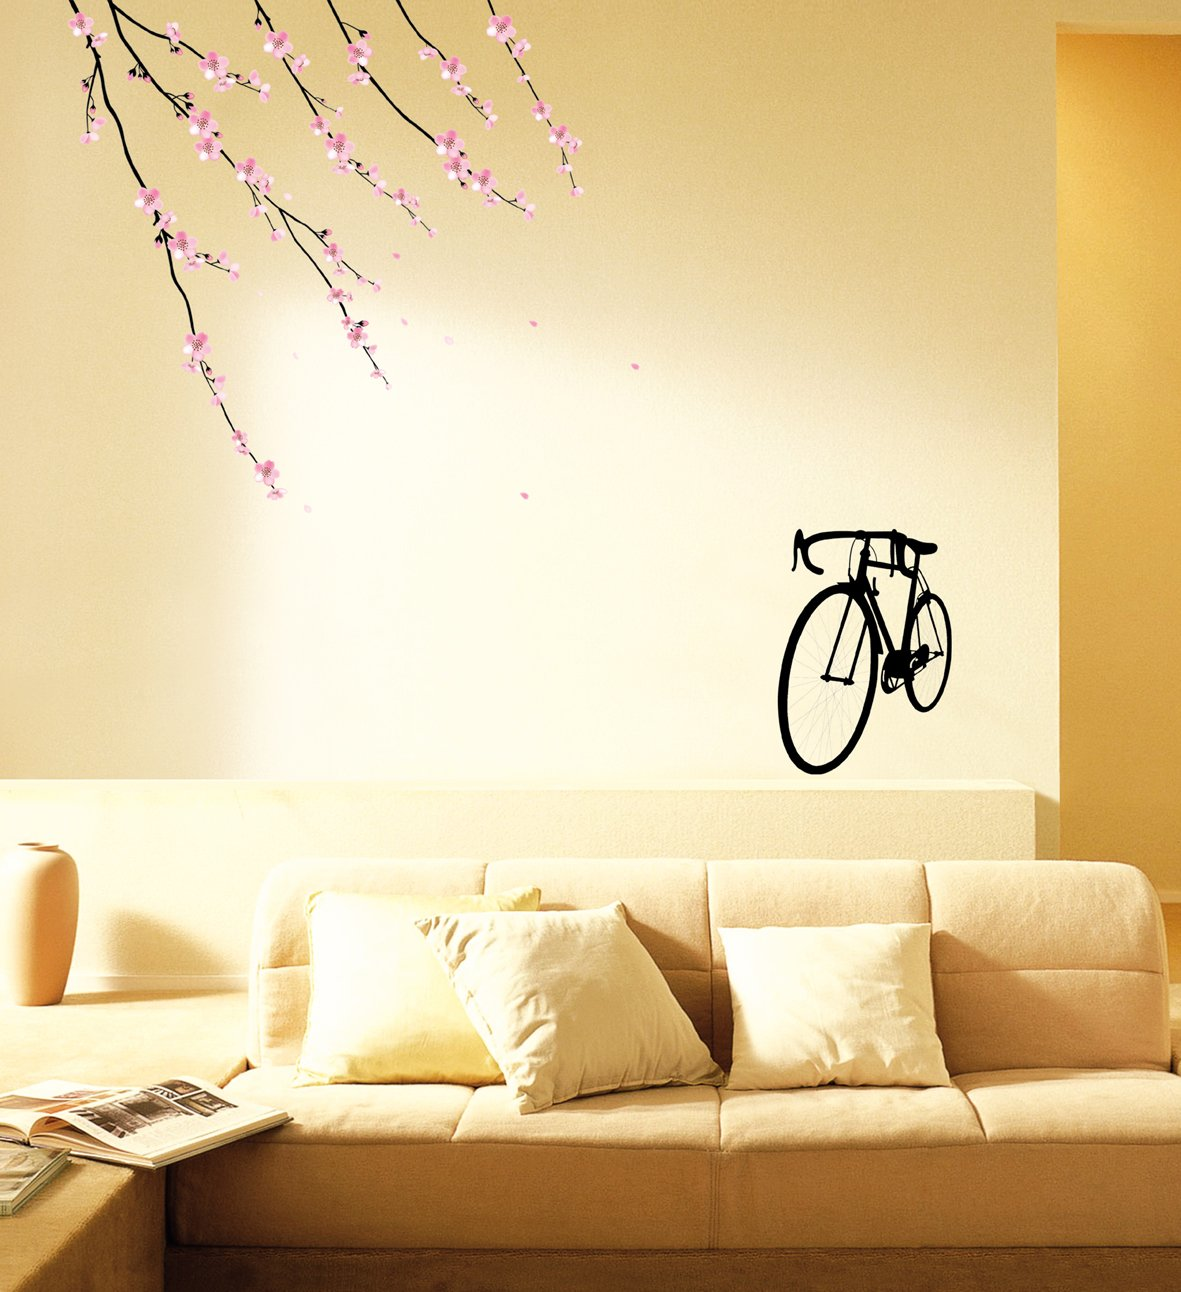 Amazon.com: HYUNDAE Sheet Easy Instant Home Decor Wall Sticker Decal ...